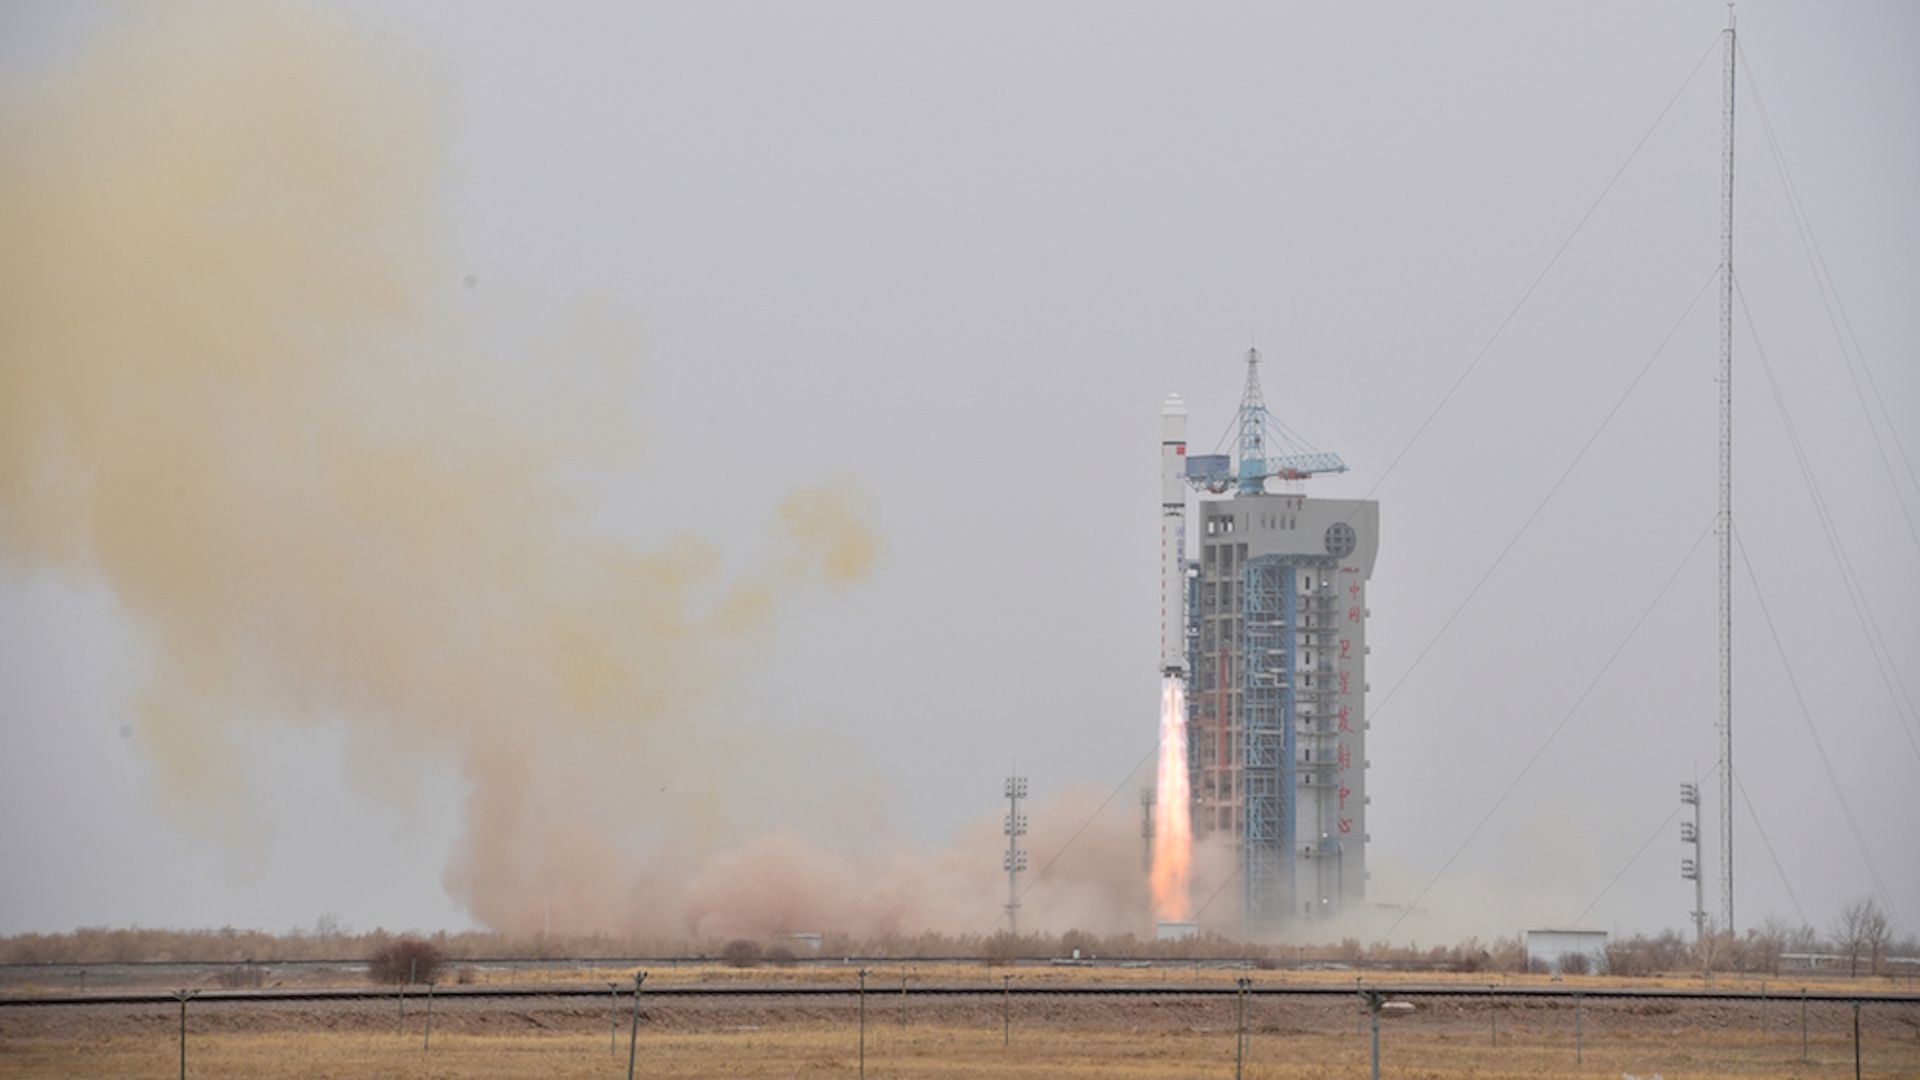 China launching a satellite.